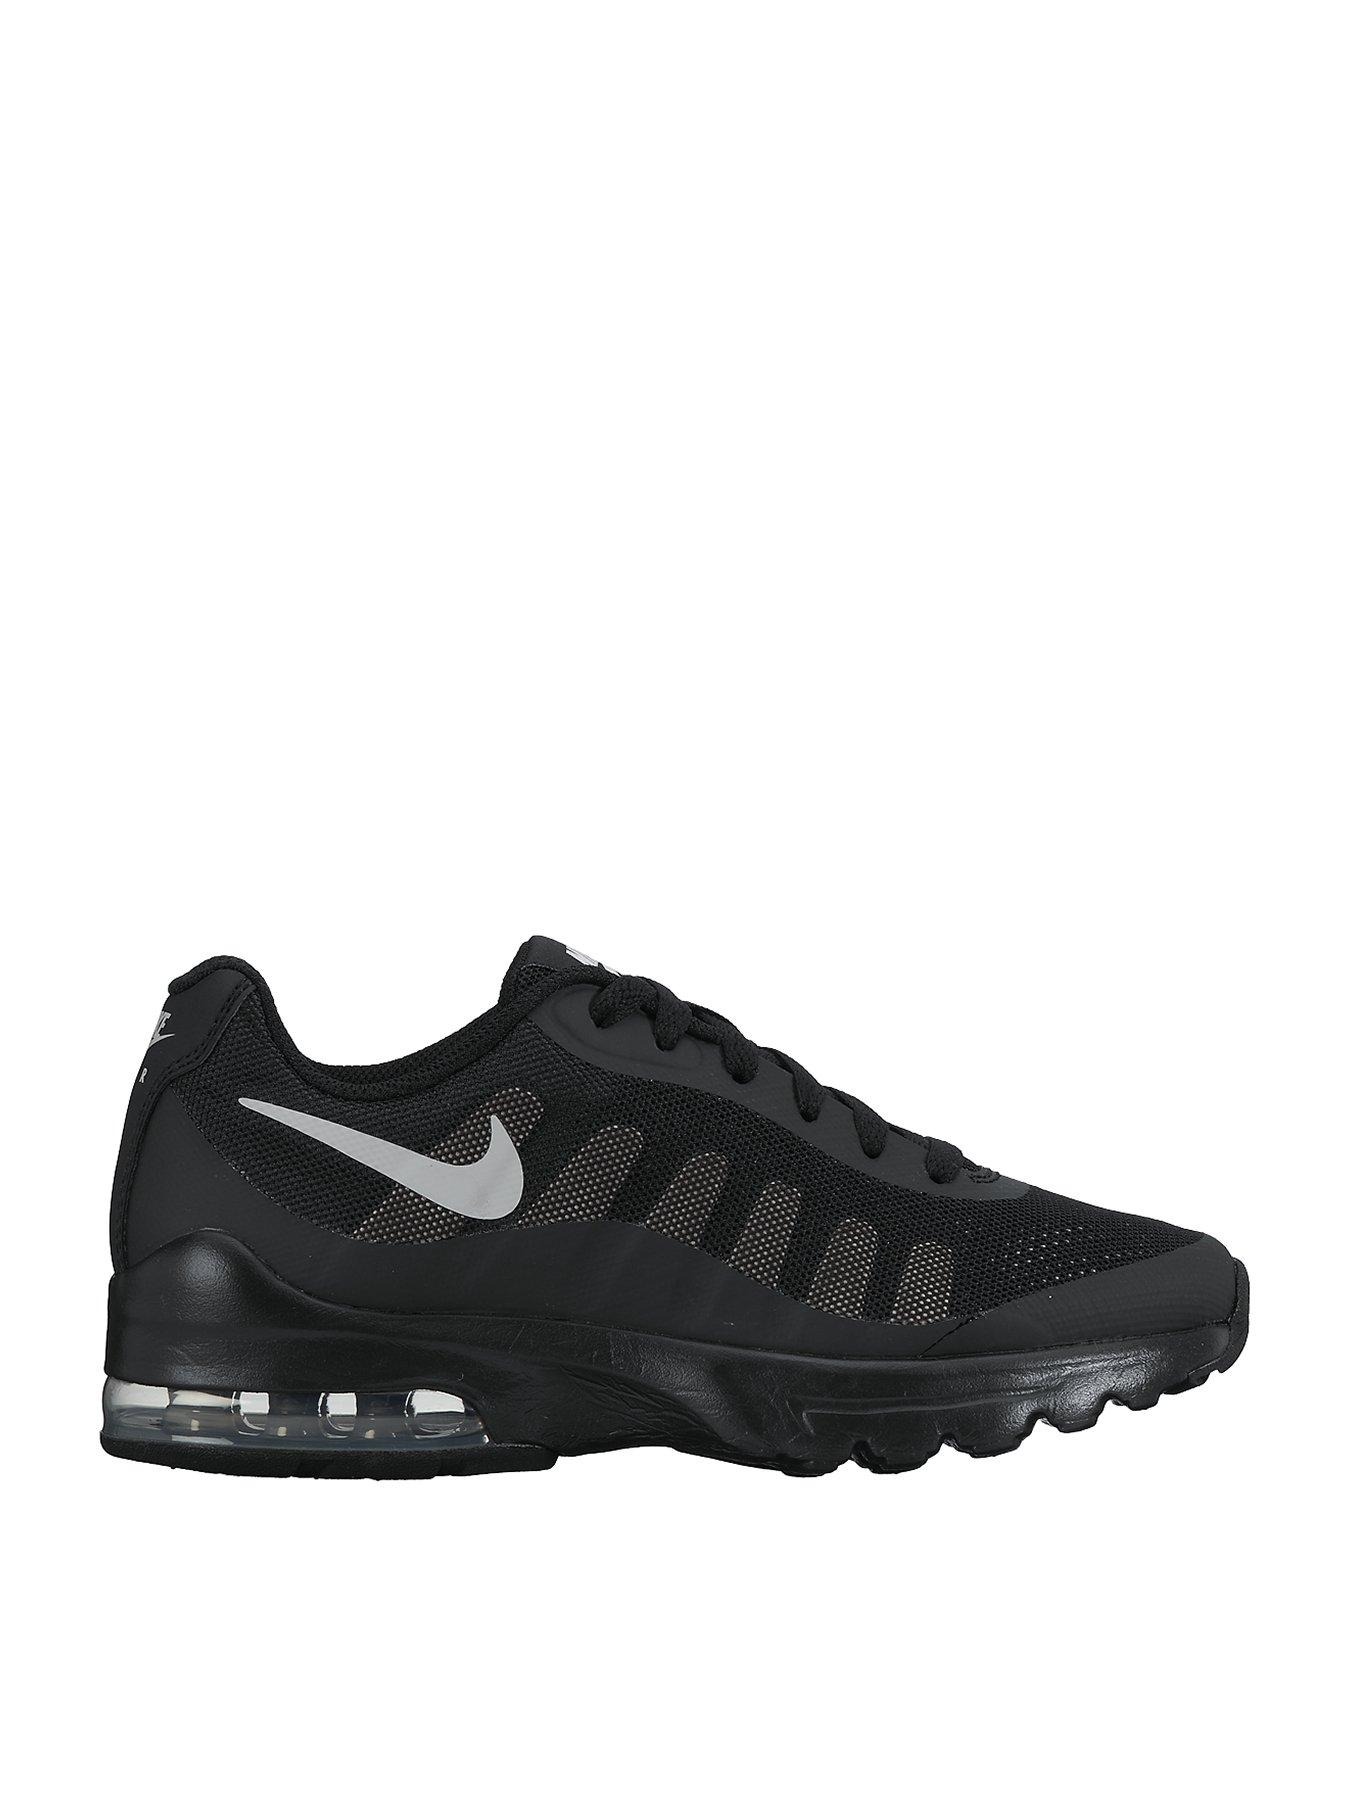 GS Nike Air Max Sequent 2 Black Size 4-6 Running Trainer Shoe RRP £55//